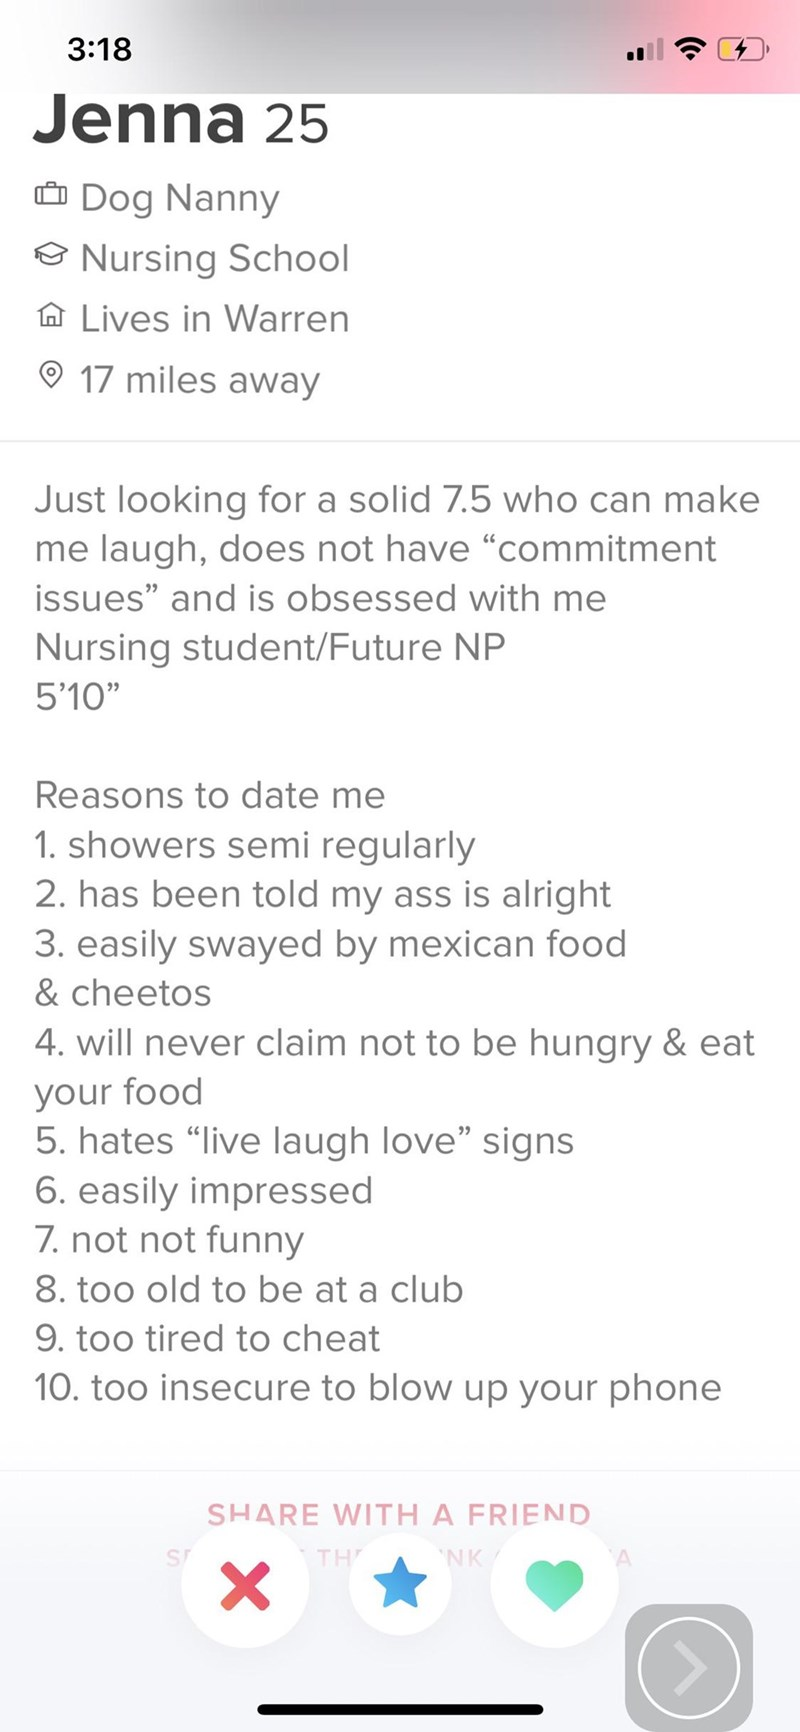 "tinder - Text - 3:18 Jenna 25 Dog Nanny Nursing School Lives in Warren 17 miles away Just looking for a solid 7.5 who can make me laugh, does not have ""commitment issues"" and is obsessed with me Nursing student/Future NP 5'10"" Reasons to date me 1. showers semi regularly 2. has been told my ass is alright 3. easily swayed by mexican food & cheetos 4. will never claim not to be hungry & eat your food 5. hates ""live laugh love"" signs 6. easily impressed 7. not not funny 8. too old to be at a club"